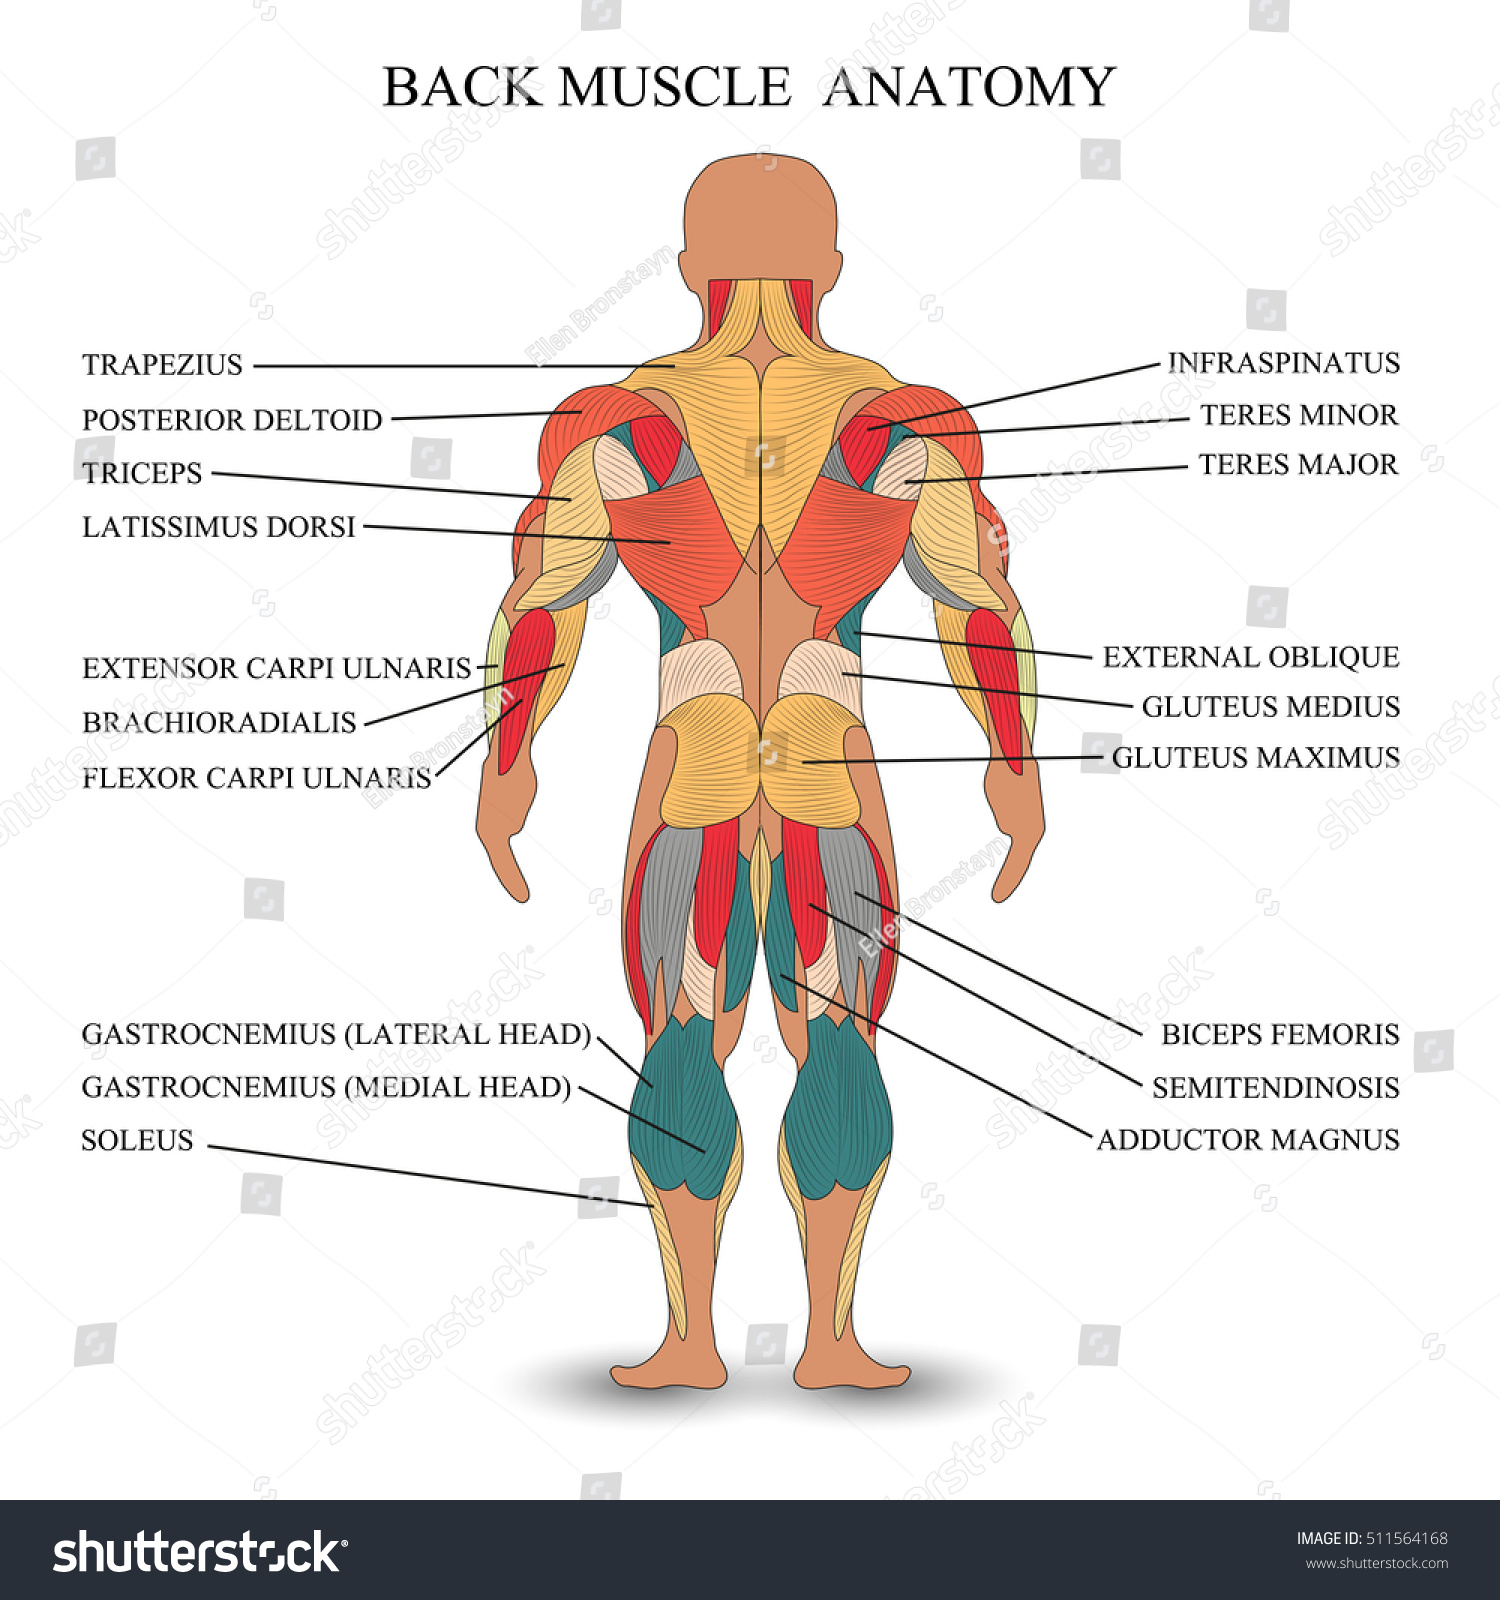 Royalty Free Stock Illustration Of Anatomy Human Muscles Back